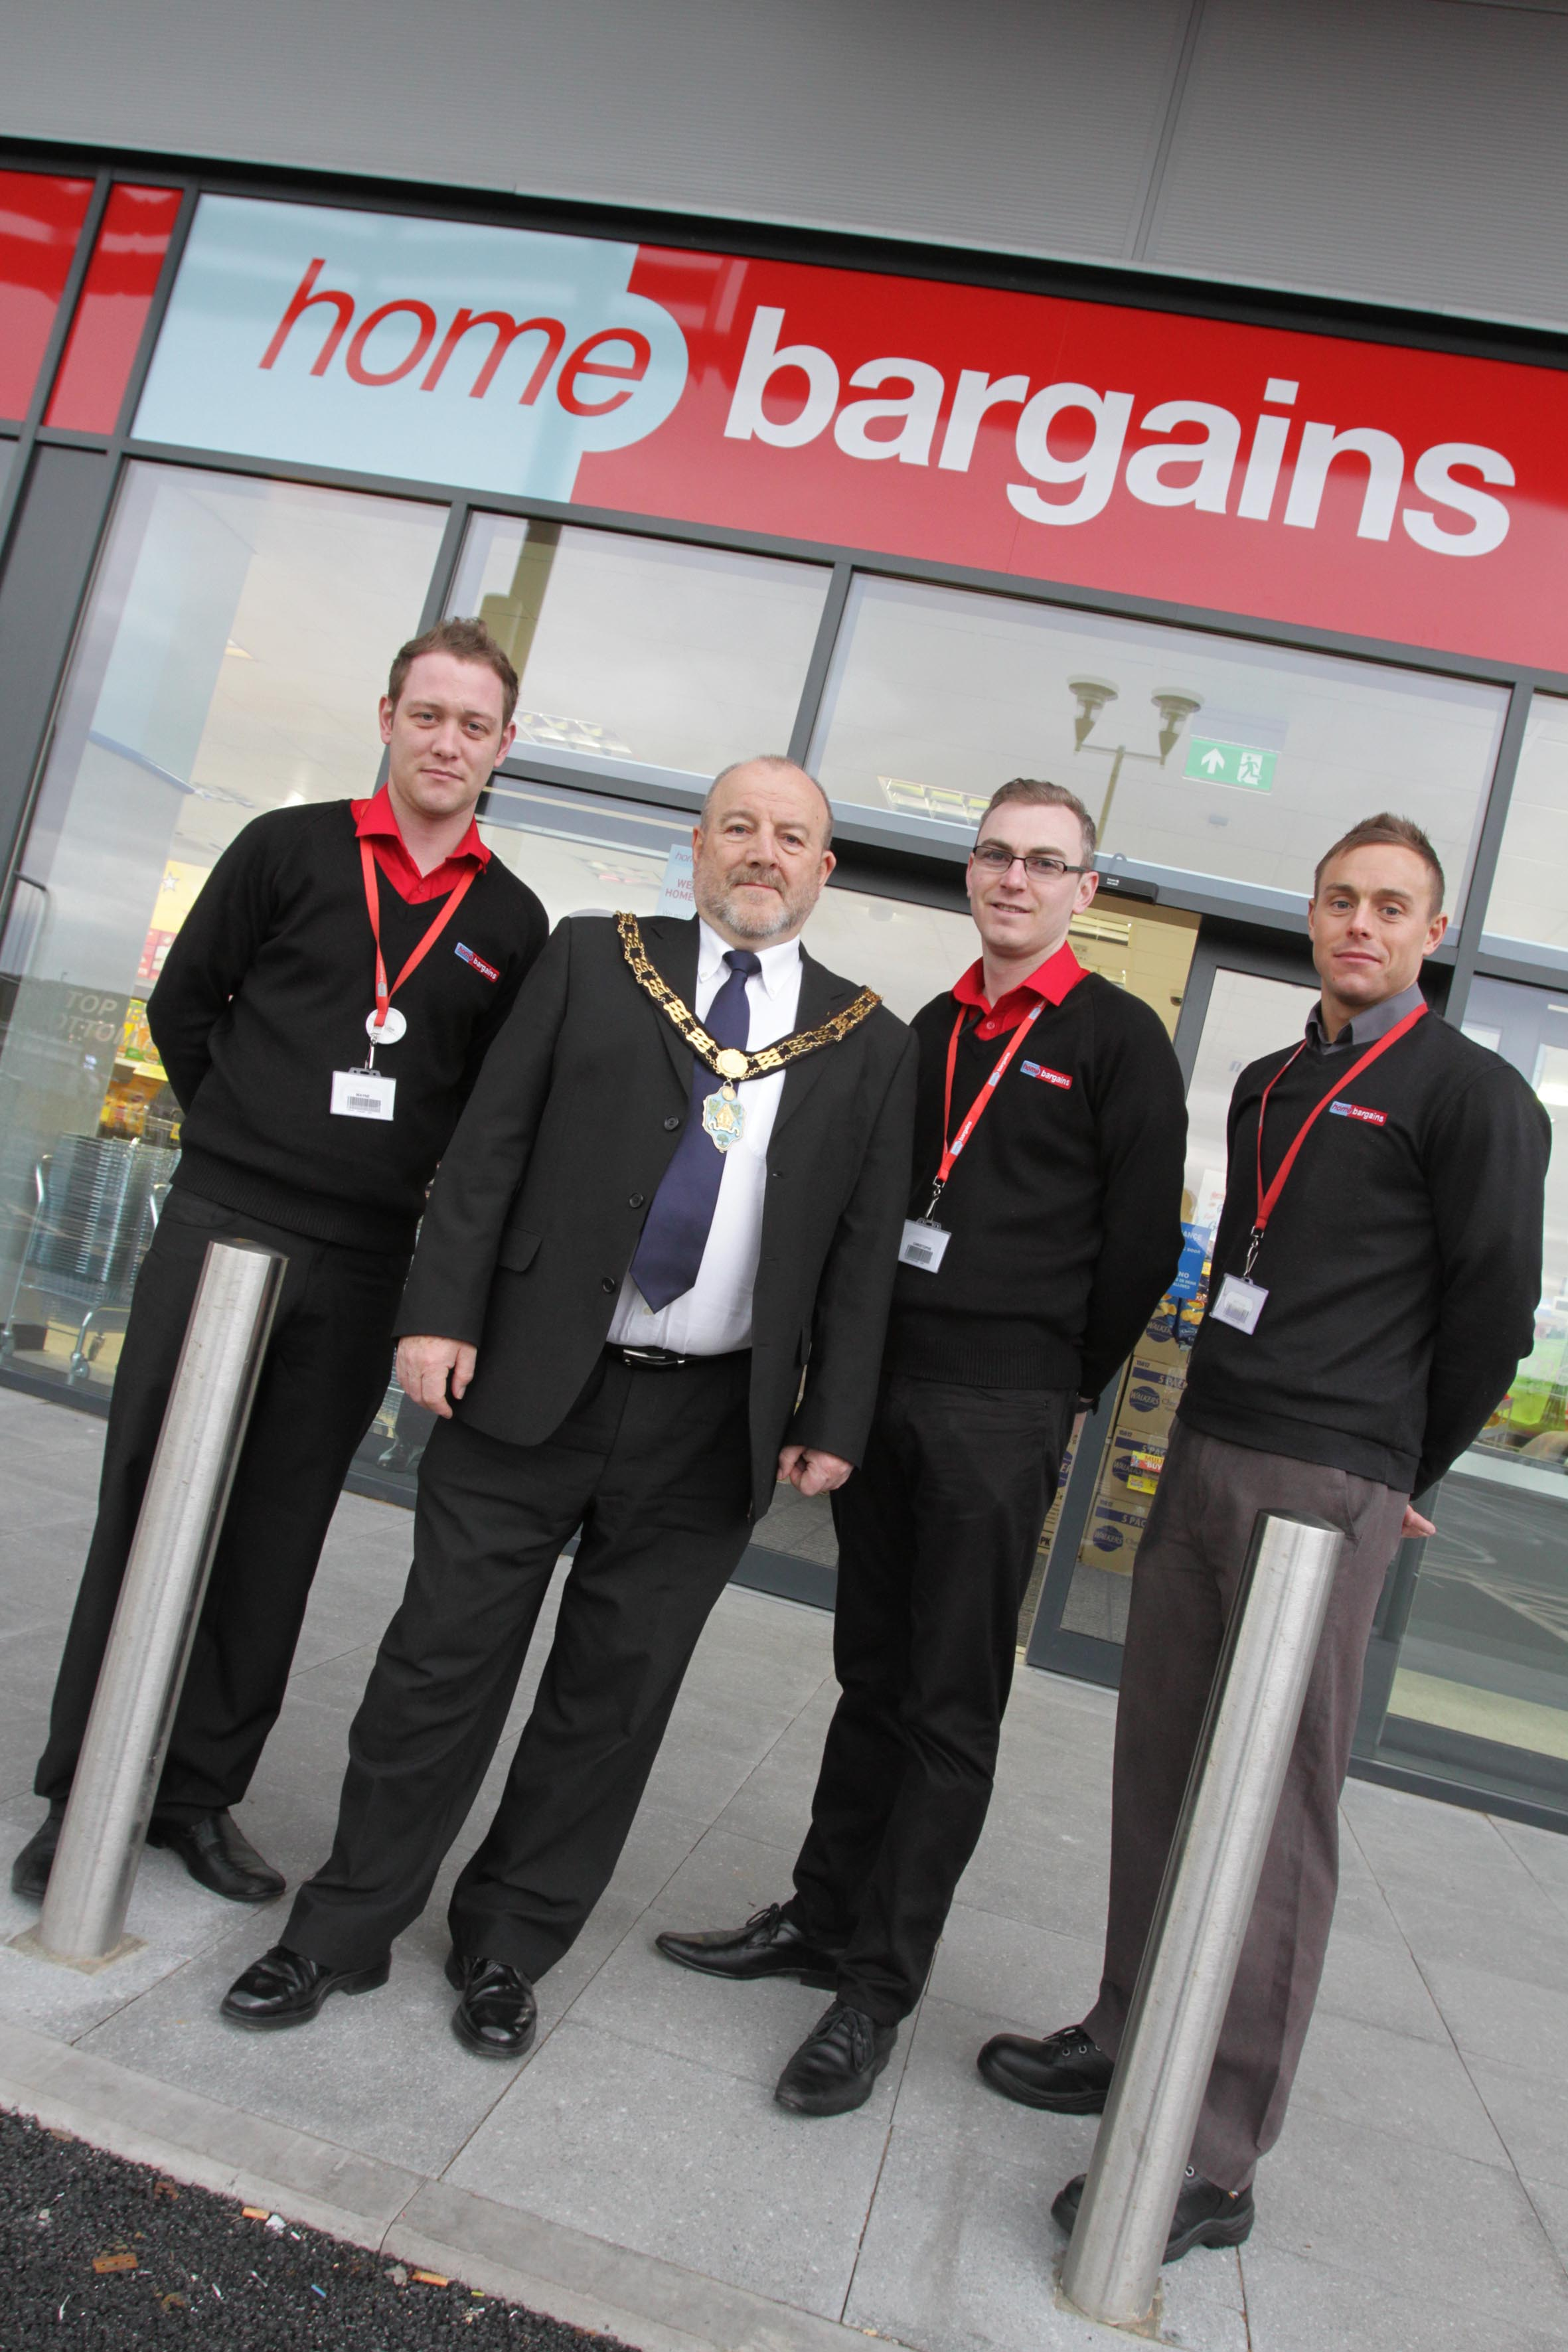 Mayor of Bishop Auckland, Councillor David Fleming opens Home Bargains at St. Helen Auckland. Also pictured are, from the left, supervisors Wayne Stringer and Chris Stokoe and store manager Anthony Pattison.